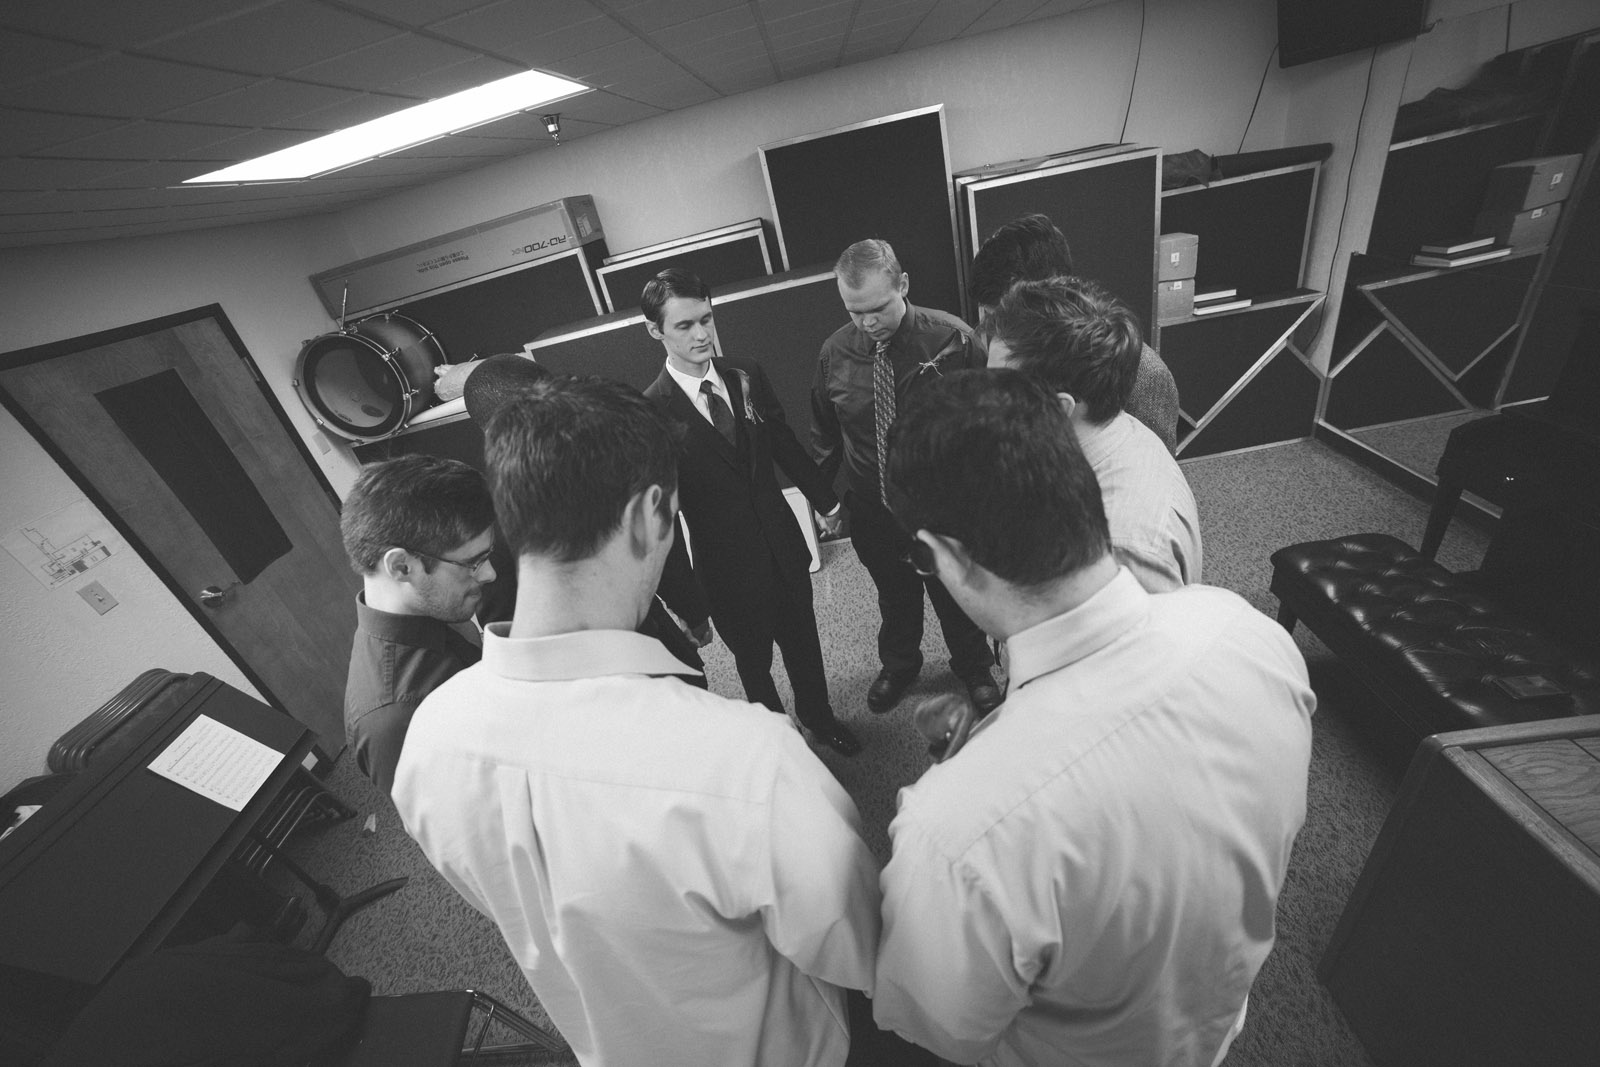 020-groomsmen-praying-together-in-new-mexico-church-before-wedding